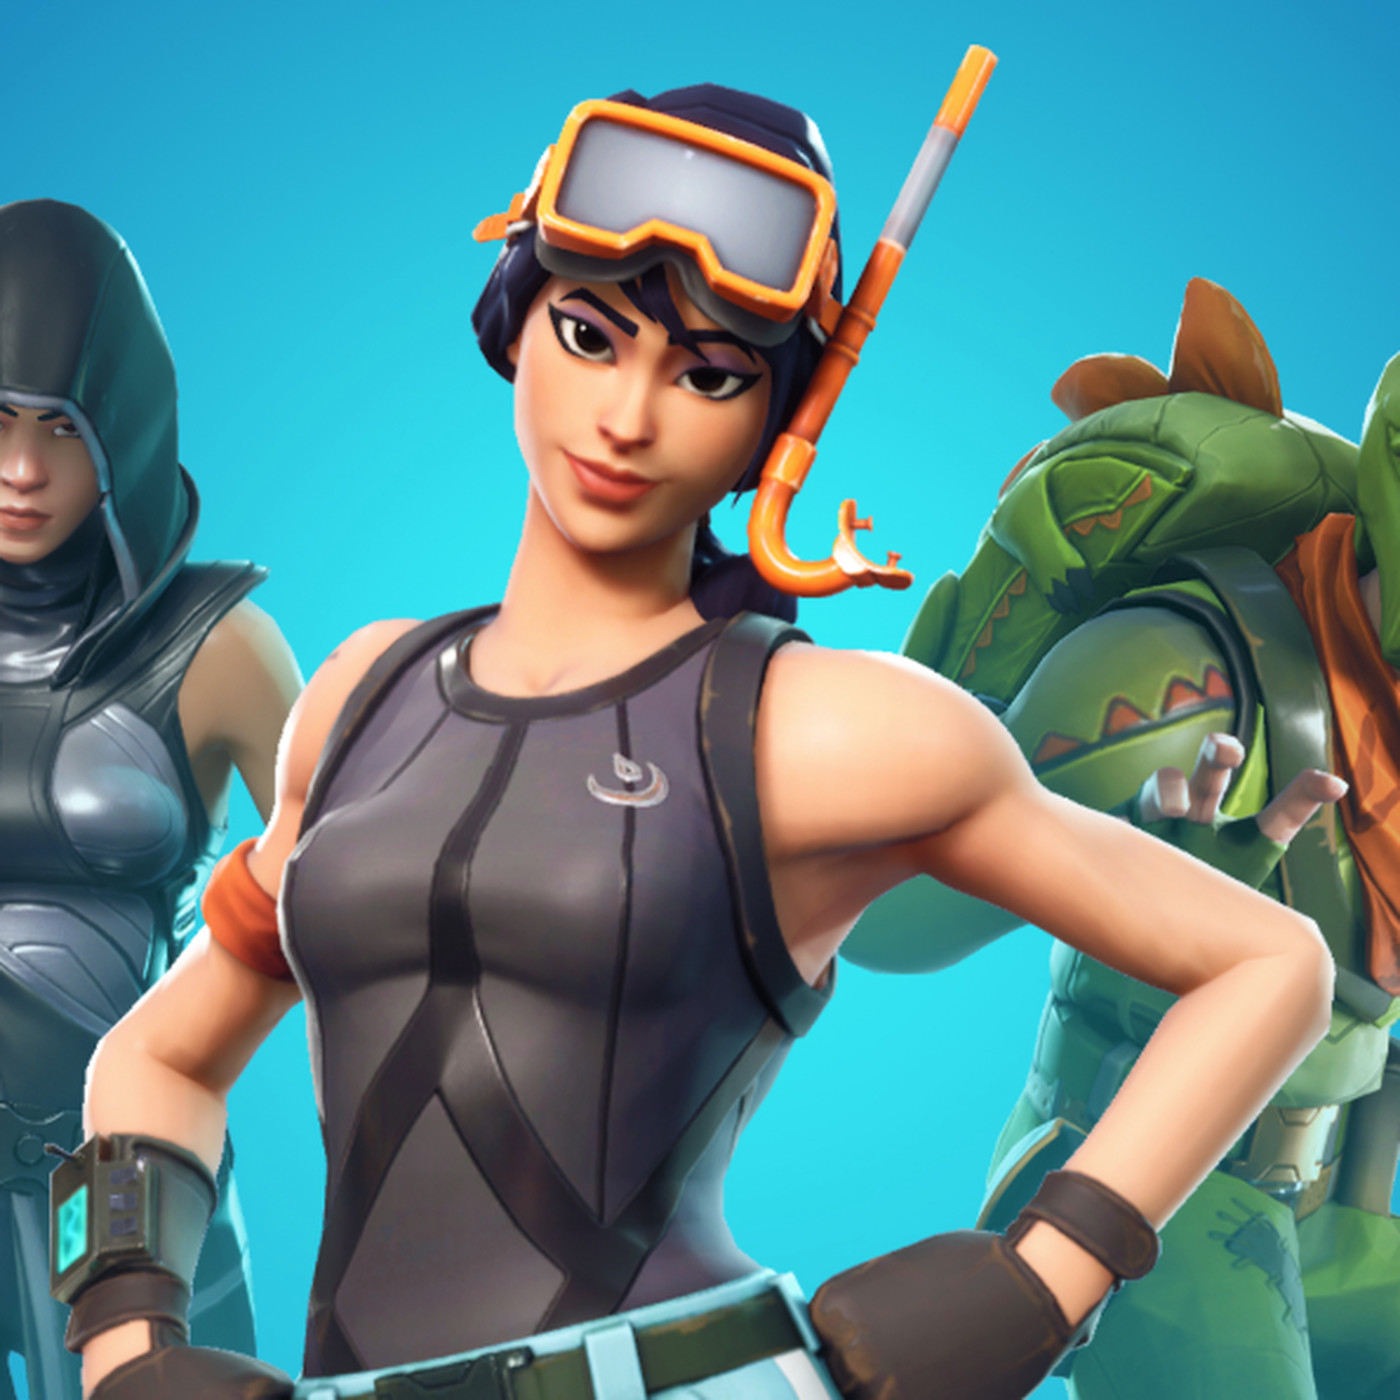 Fortnite keyboard-and-mouse players on PS4 will be matchmade